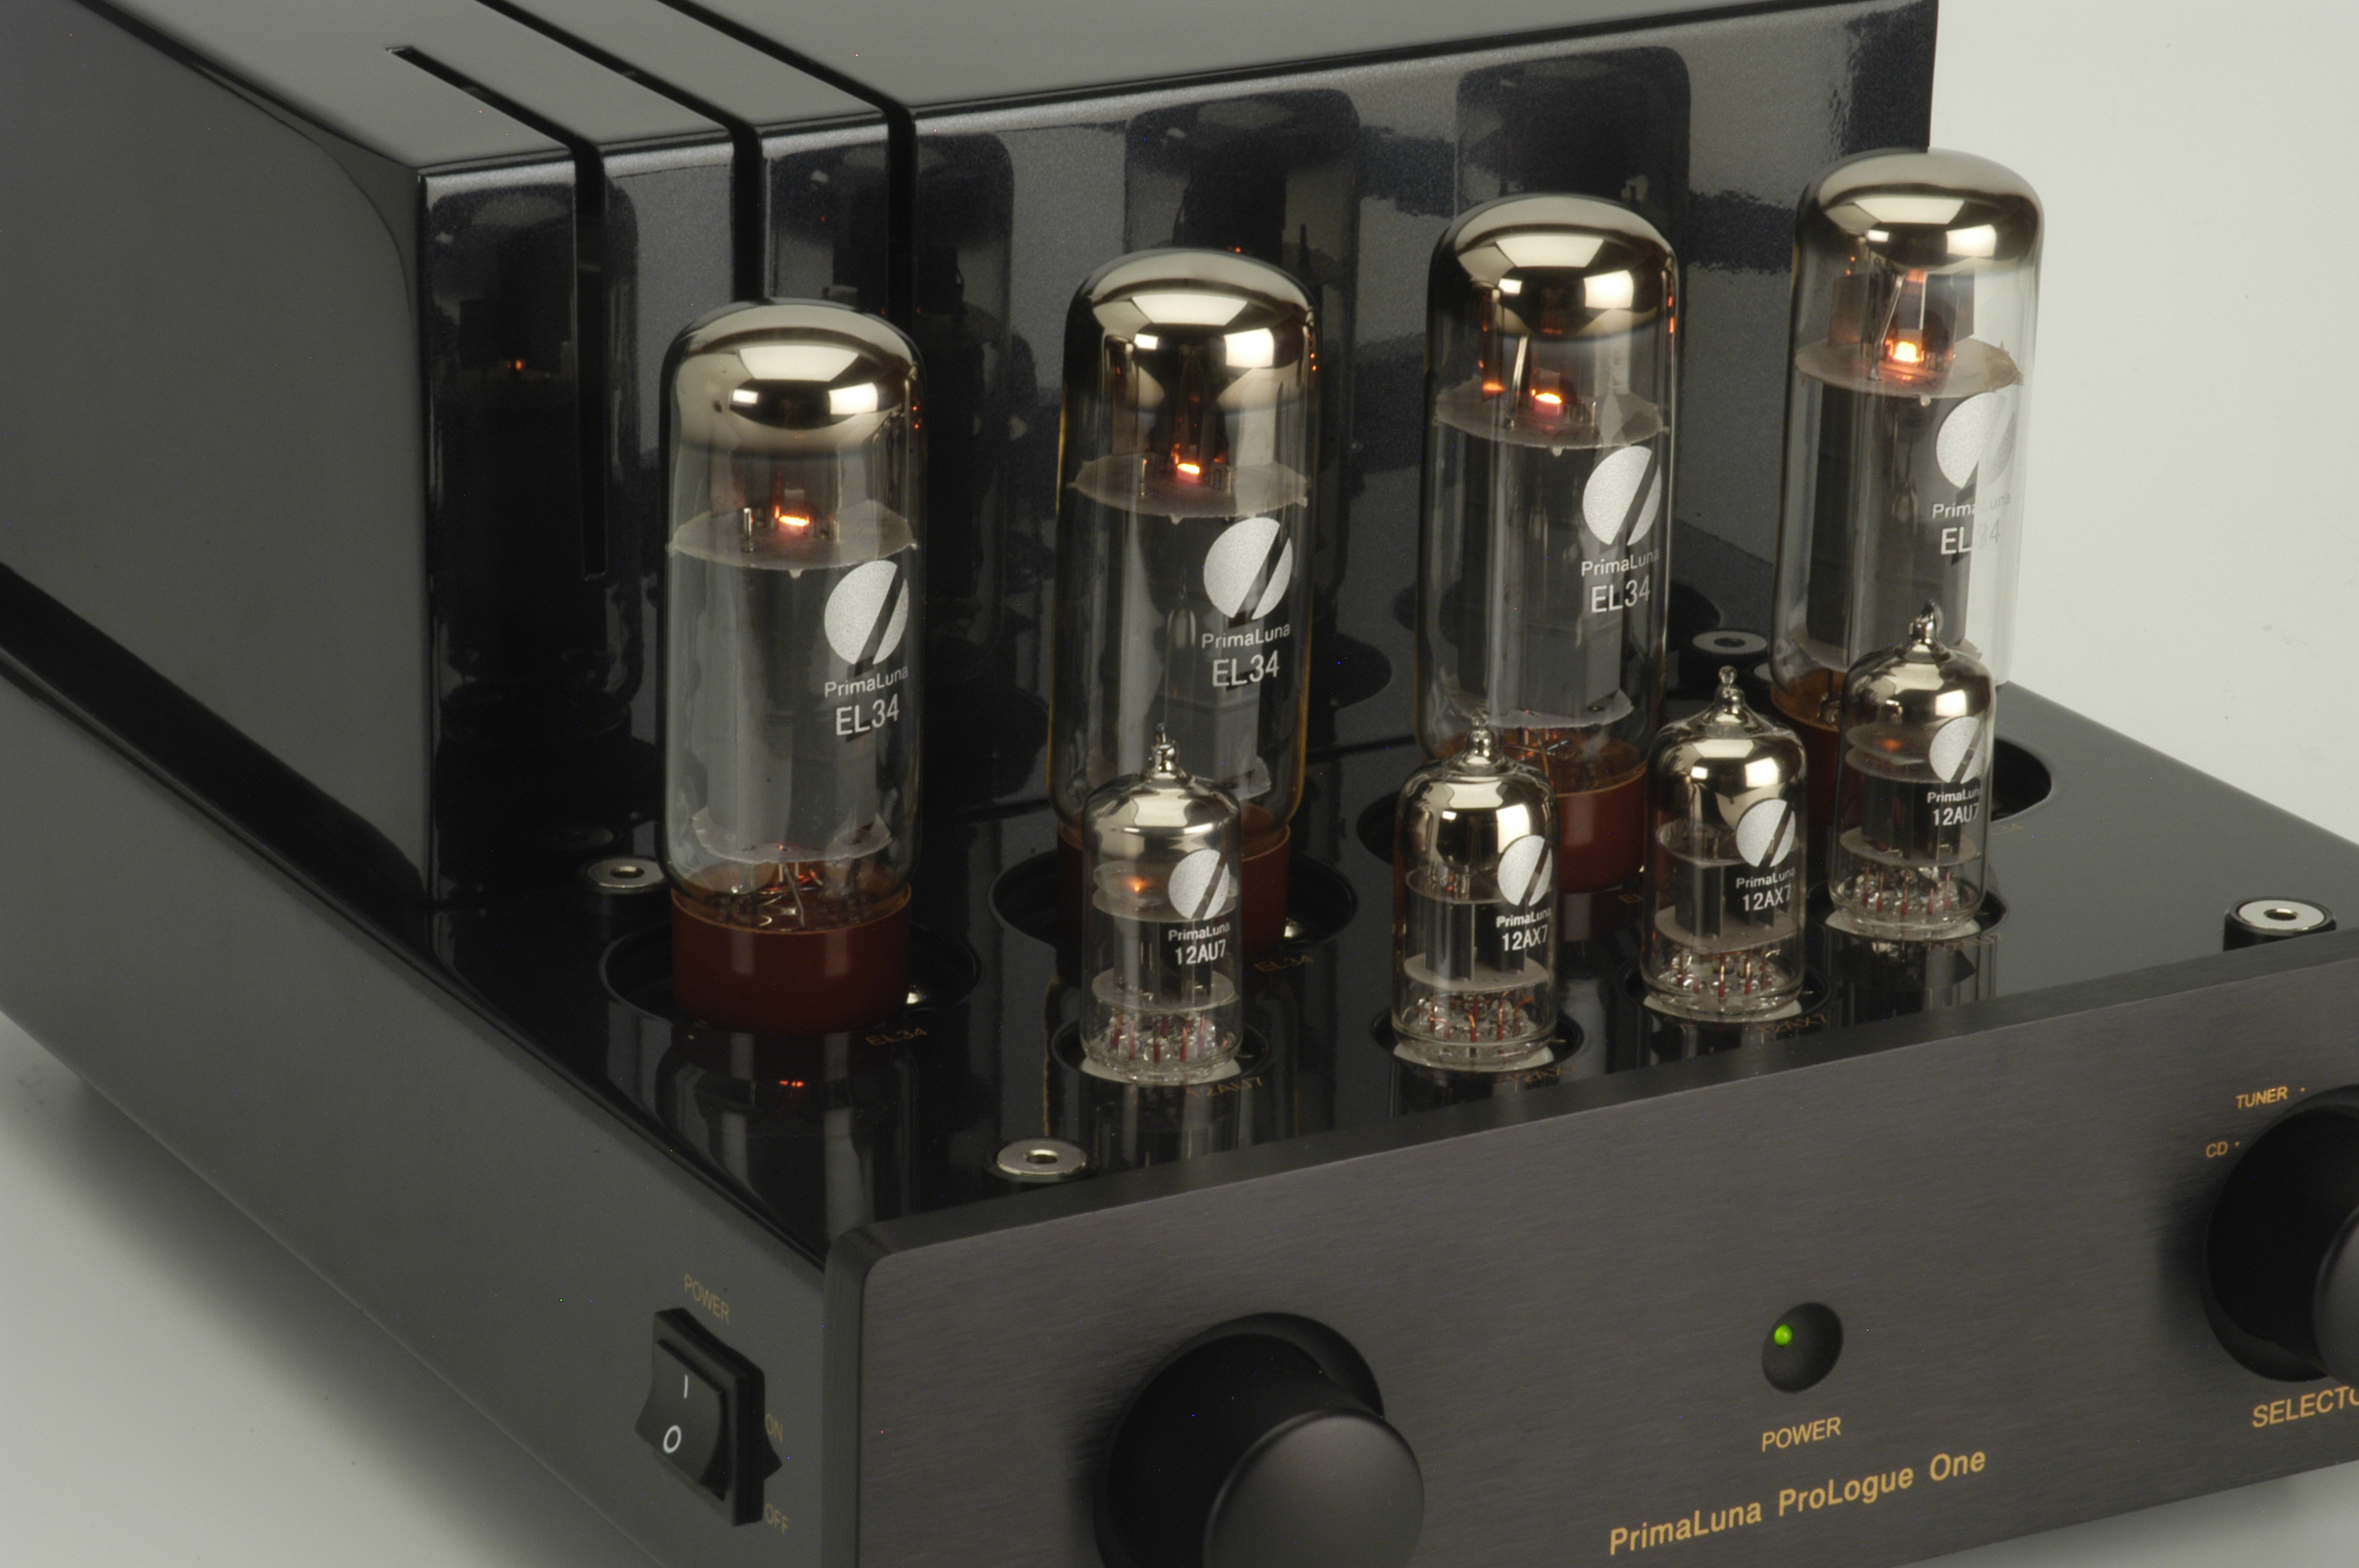 PrimaLuna: the most awarded brand by The Absolute Sound ...